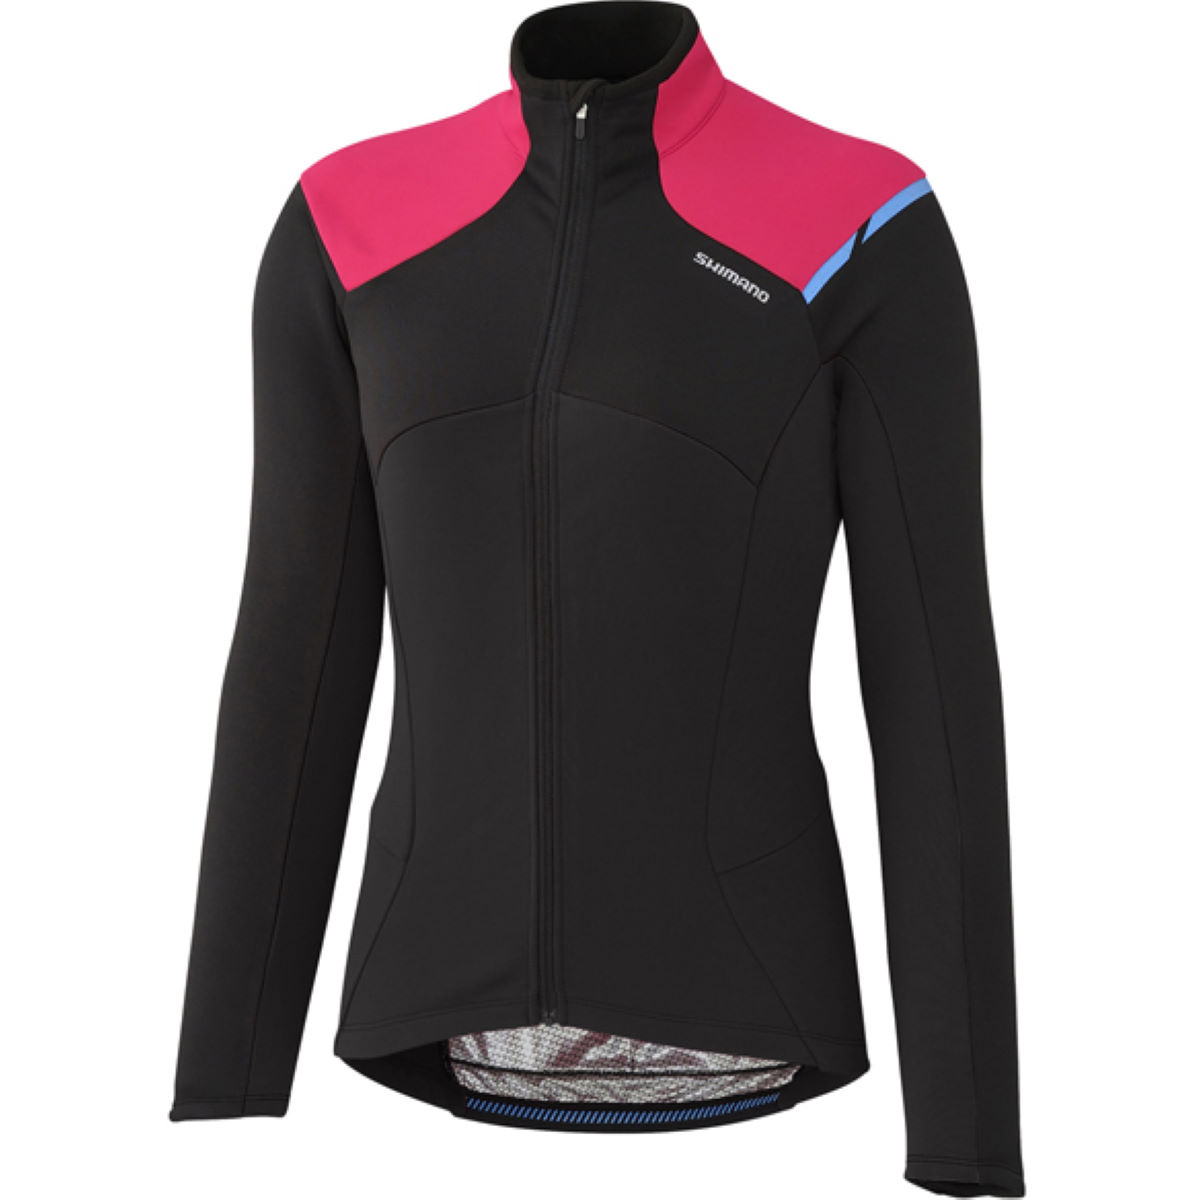 Maillot Femme Shimano Thermal (hiver) - Large Noir